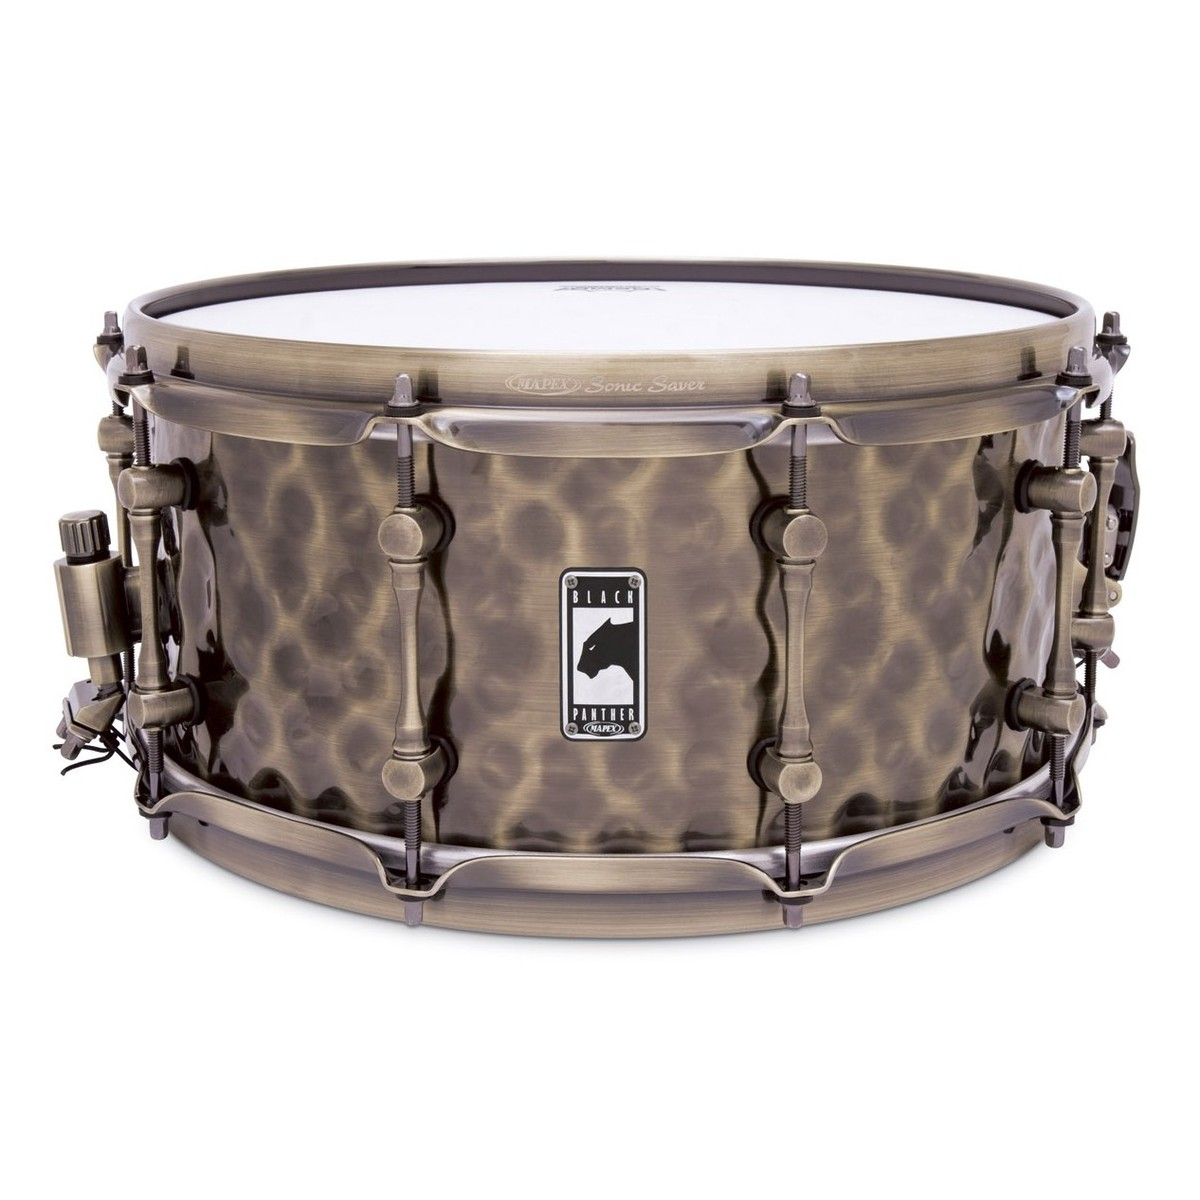 Mapex Black Panther \'The Sledge Hammer\' 14x6.5 Hammered Brass Snare ...